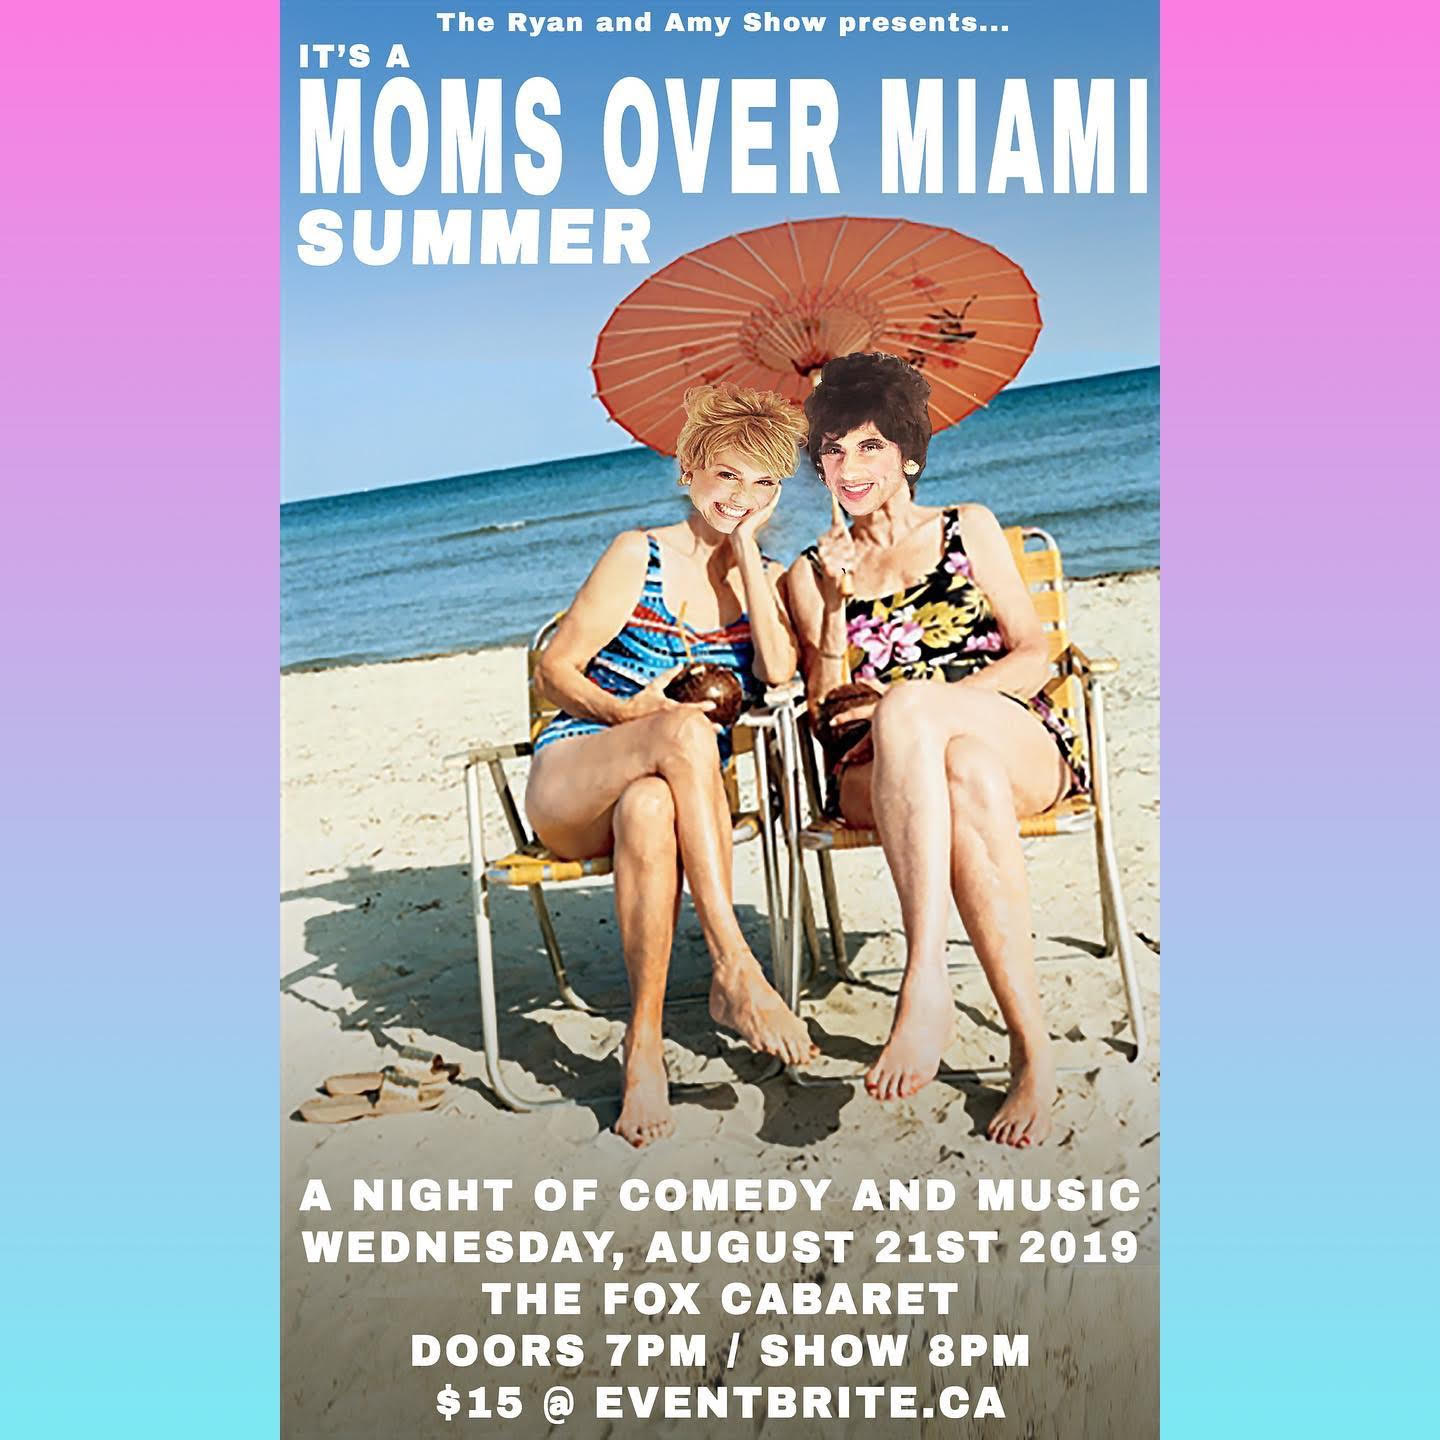 moms over miami summer show '19.jpg